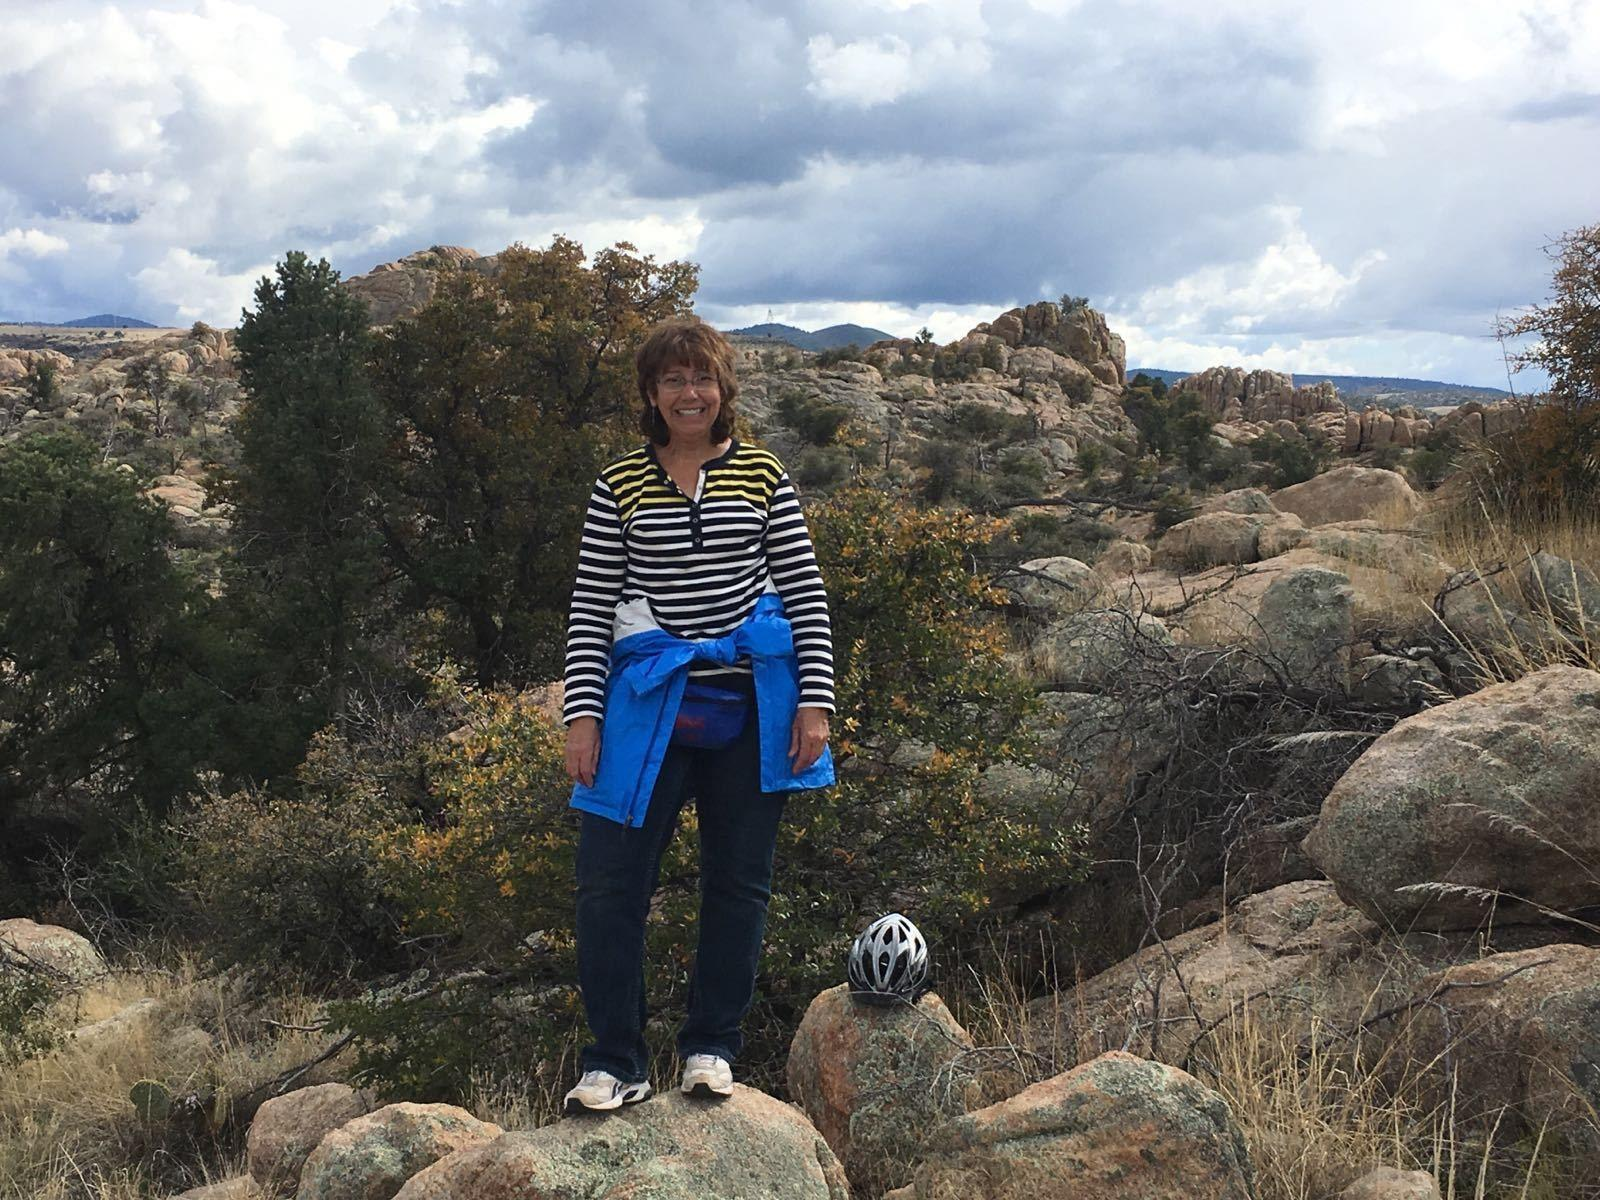 meet prescott valley singles Search for local 50+ singles in prescott valley online dating brings singles together who may never otherwise meet it's a big world and the ourtimecom community wants to help you connect with singles in your area.